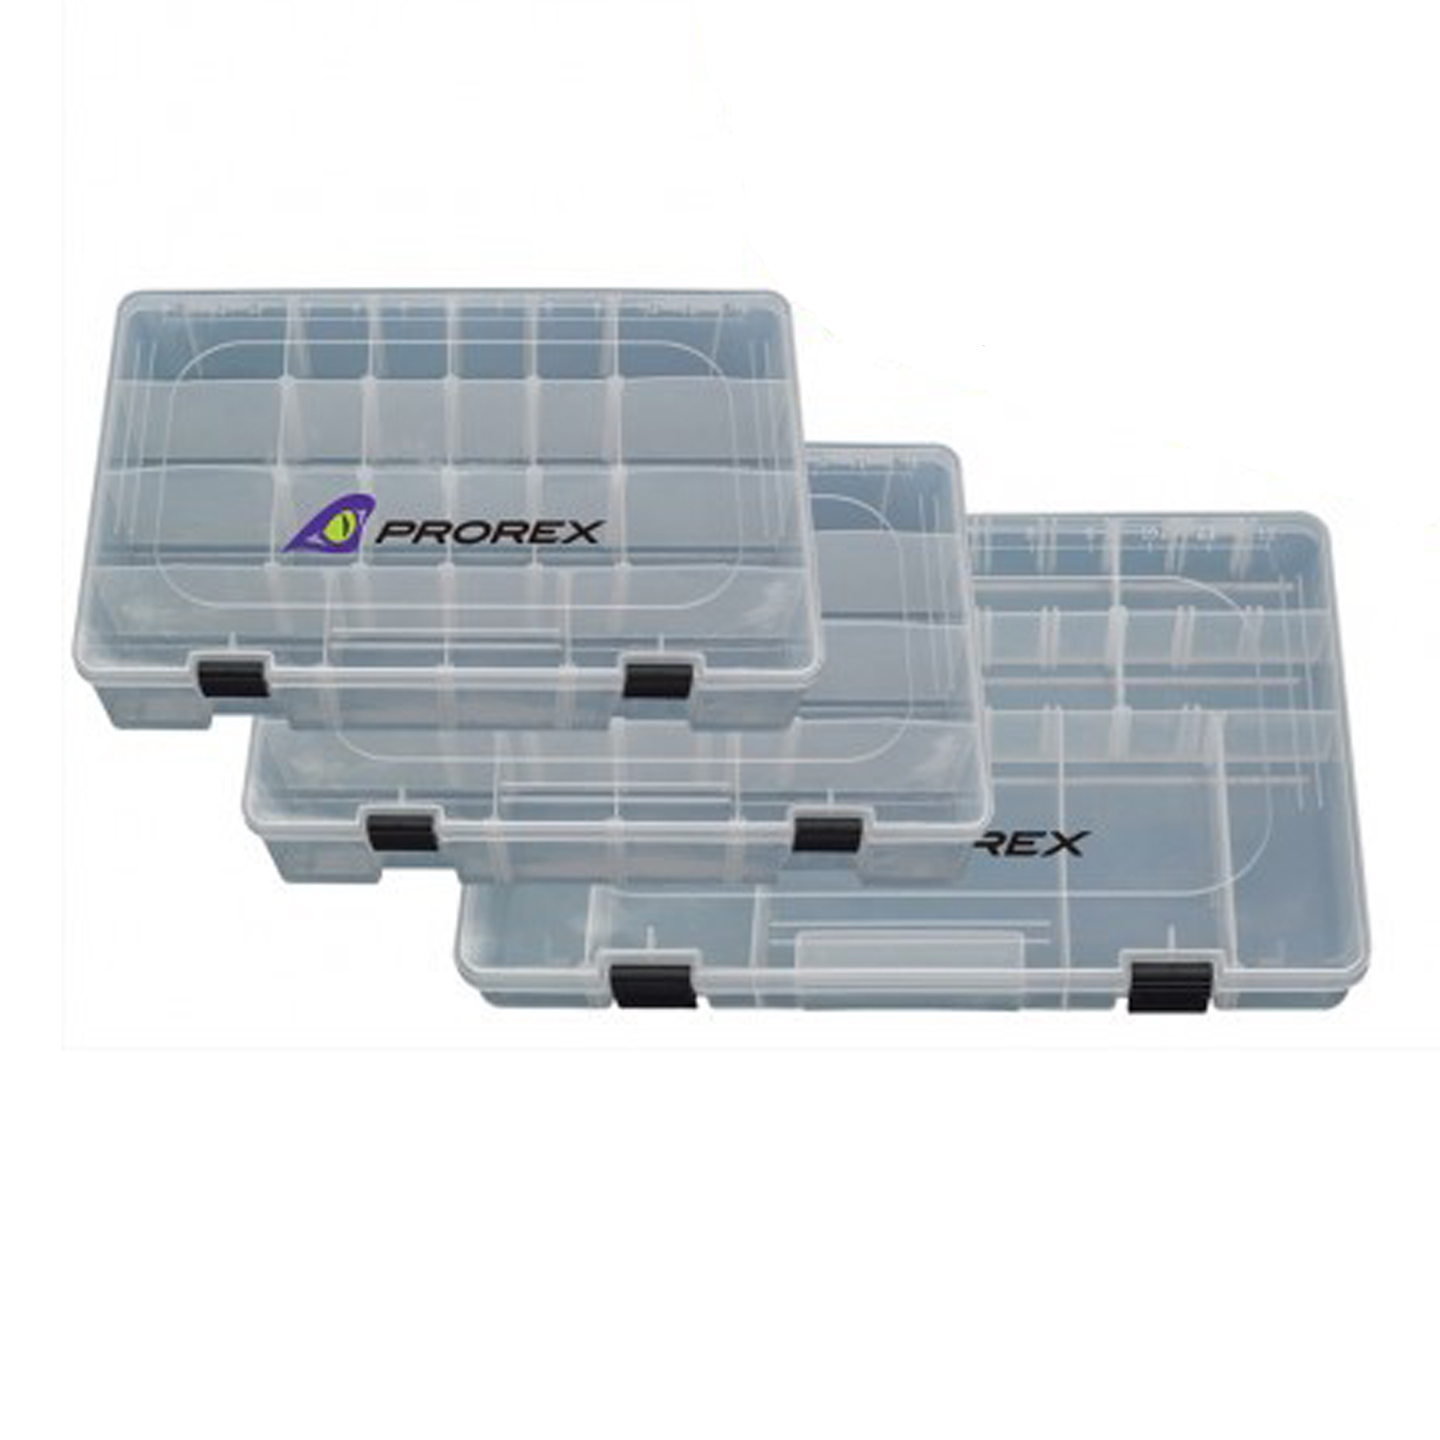 Daiwa Prorex Tackle Box